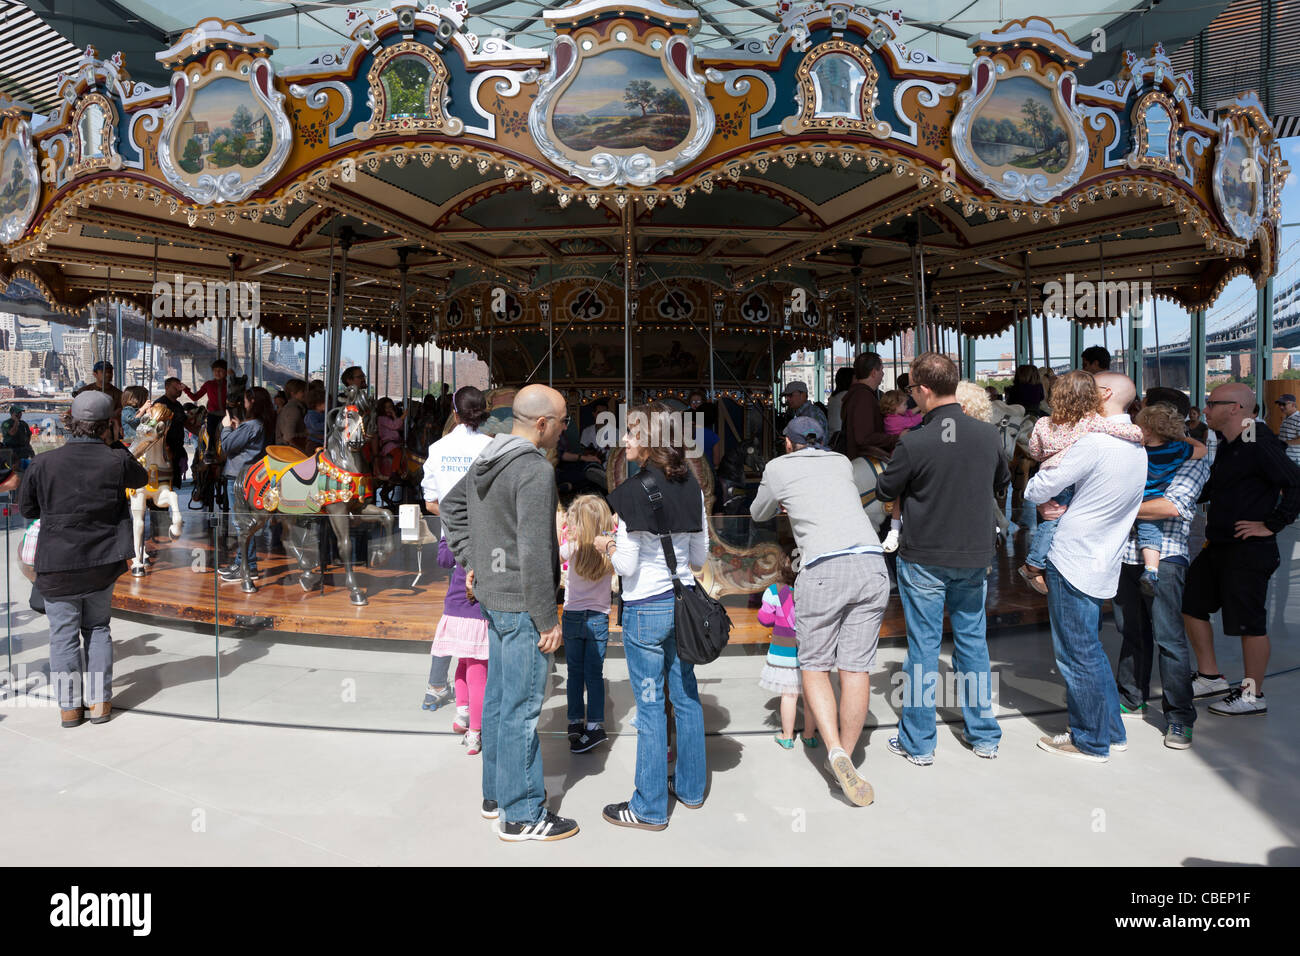 People visit historic Jane's Carousel in Brooklyn Bridge Park in the DUMBO section of Brooklyn in New York City. - Stock Image